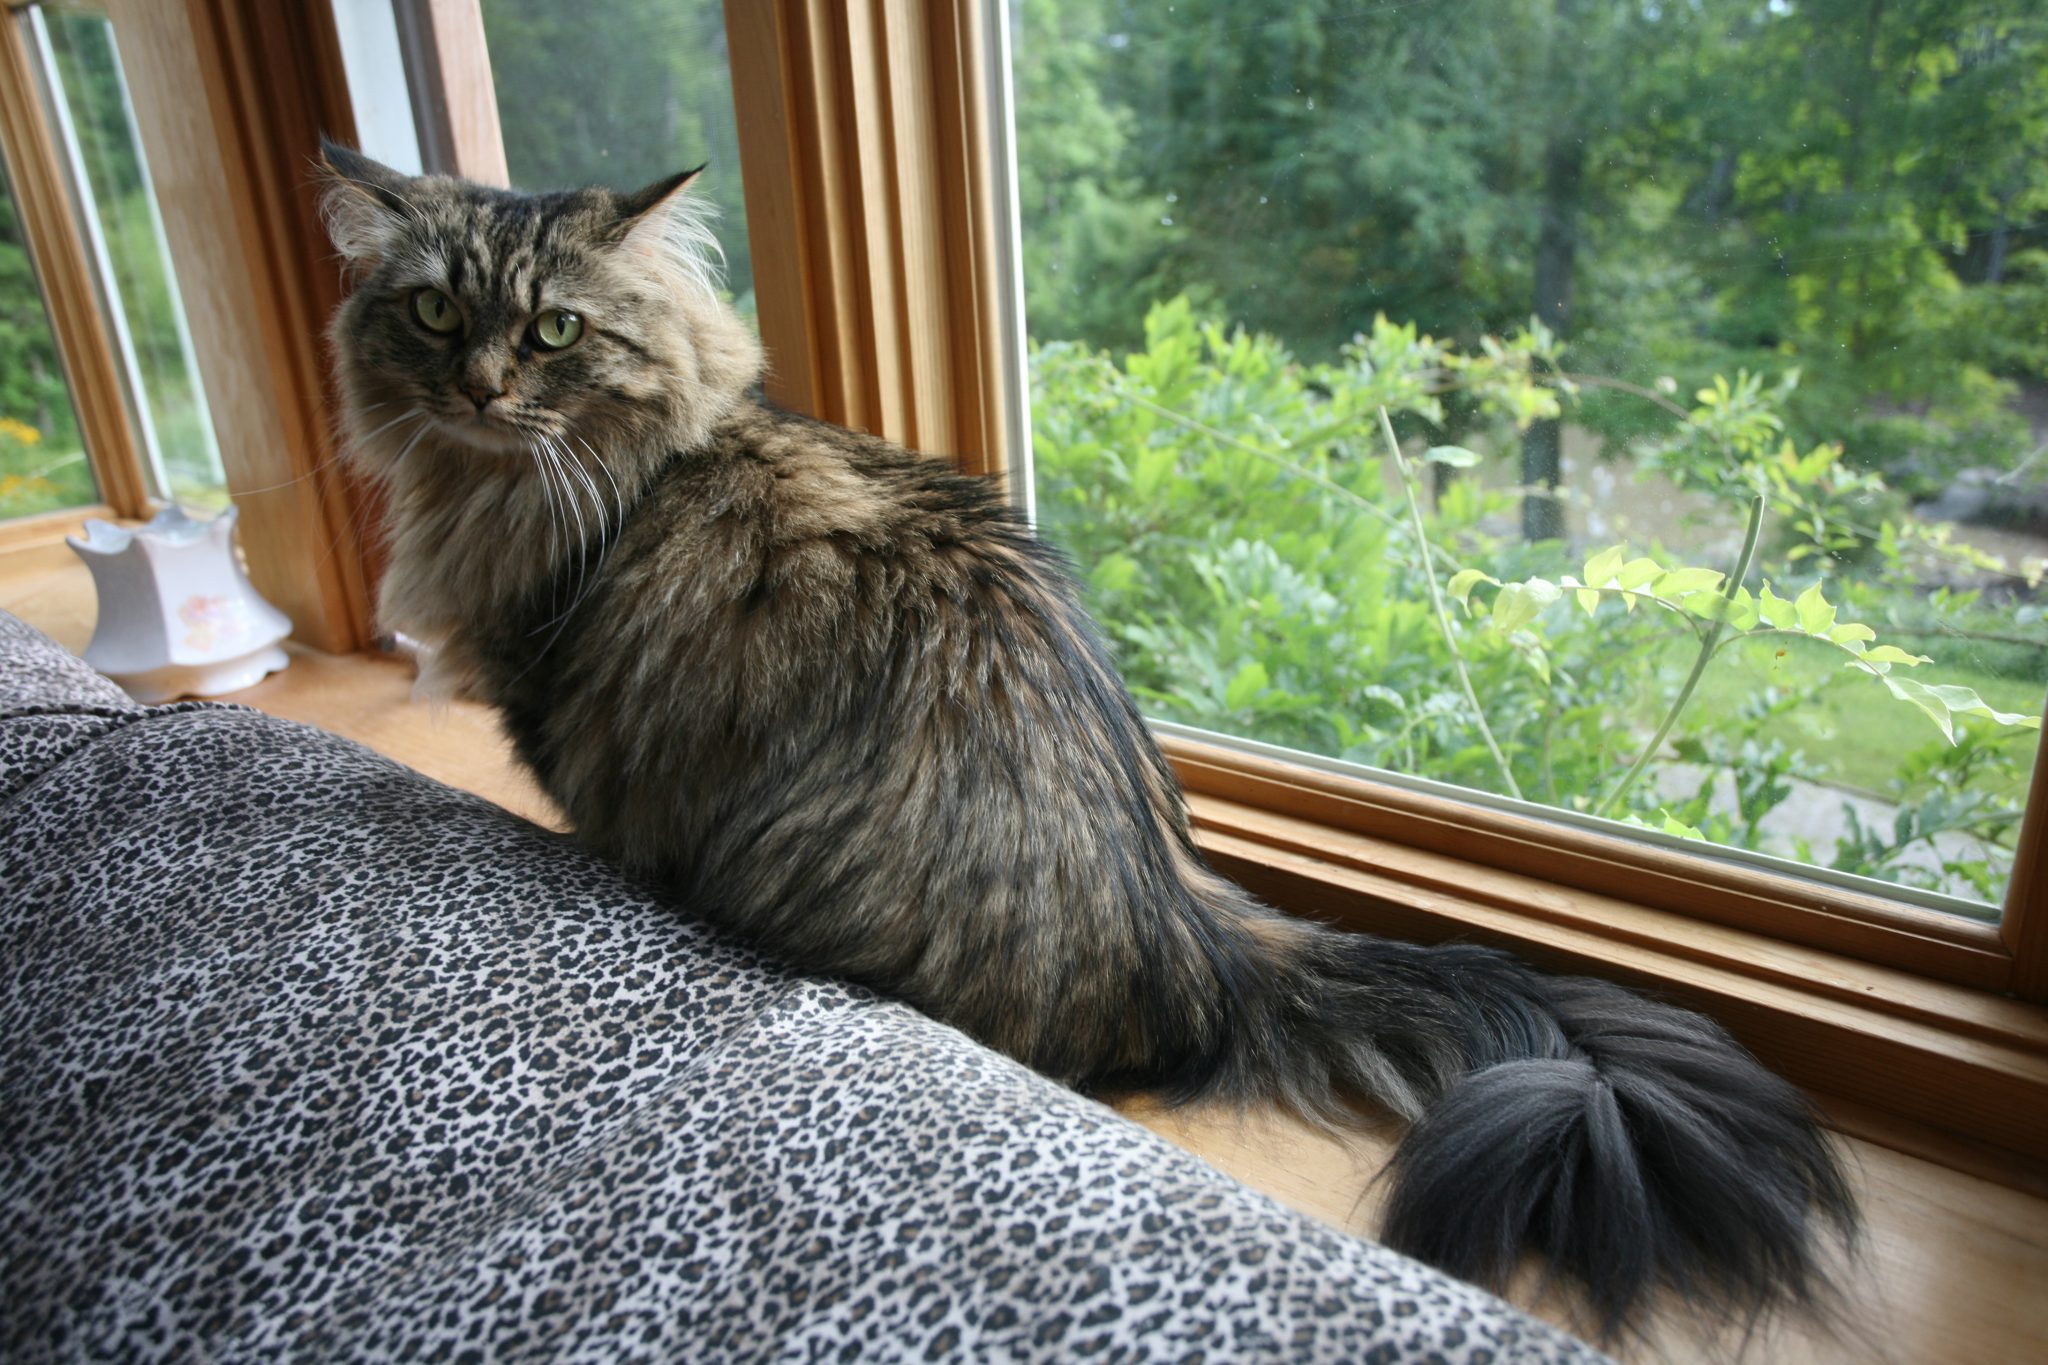 Ginger-the-Cat (named after Ms.Rogers) stakes her claim to the window-seat.